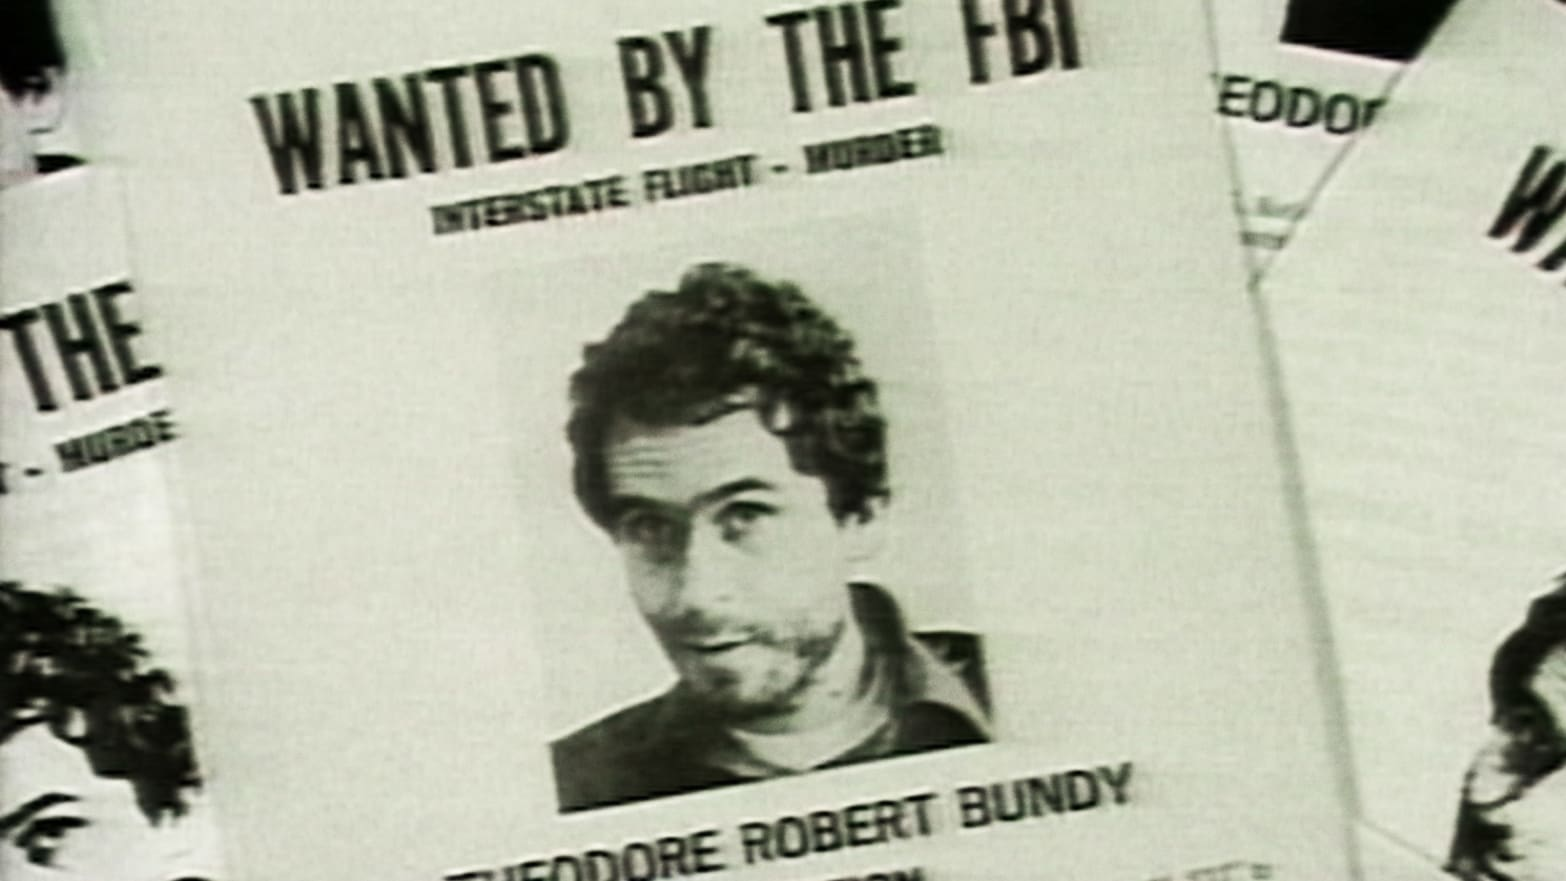 I Watched Ted Bundy Die. He Doesn't Deserve to Be Remembered.